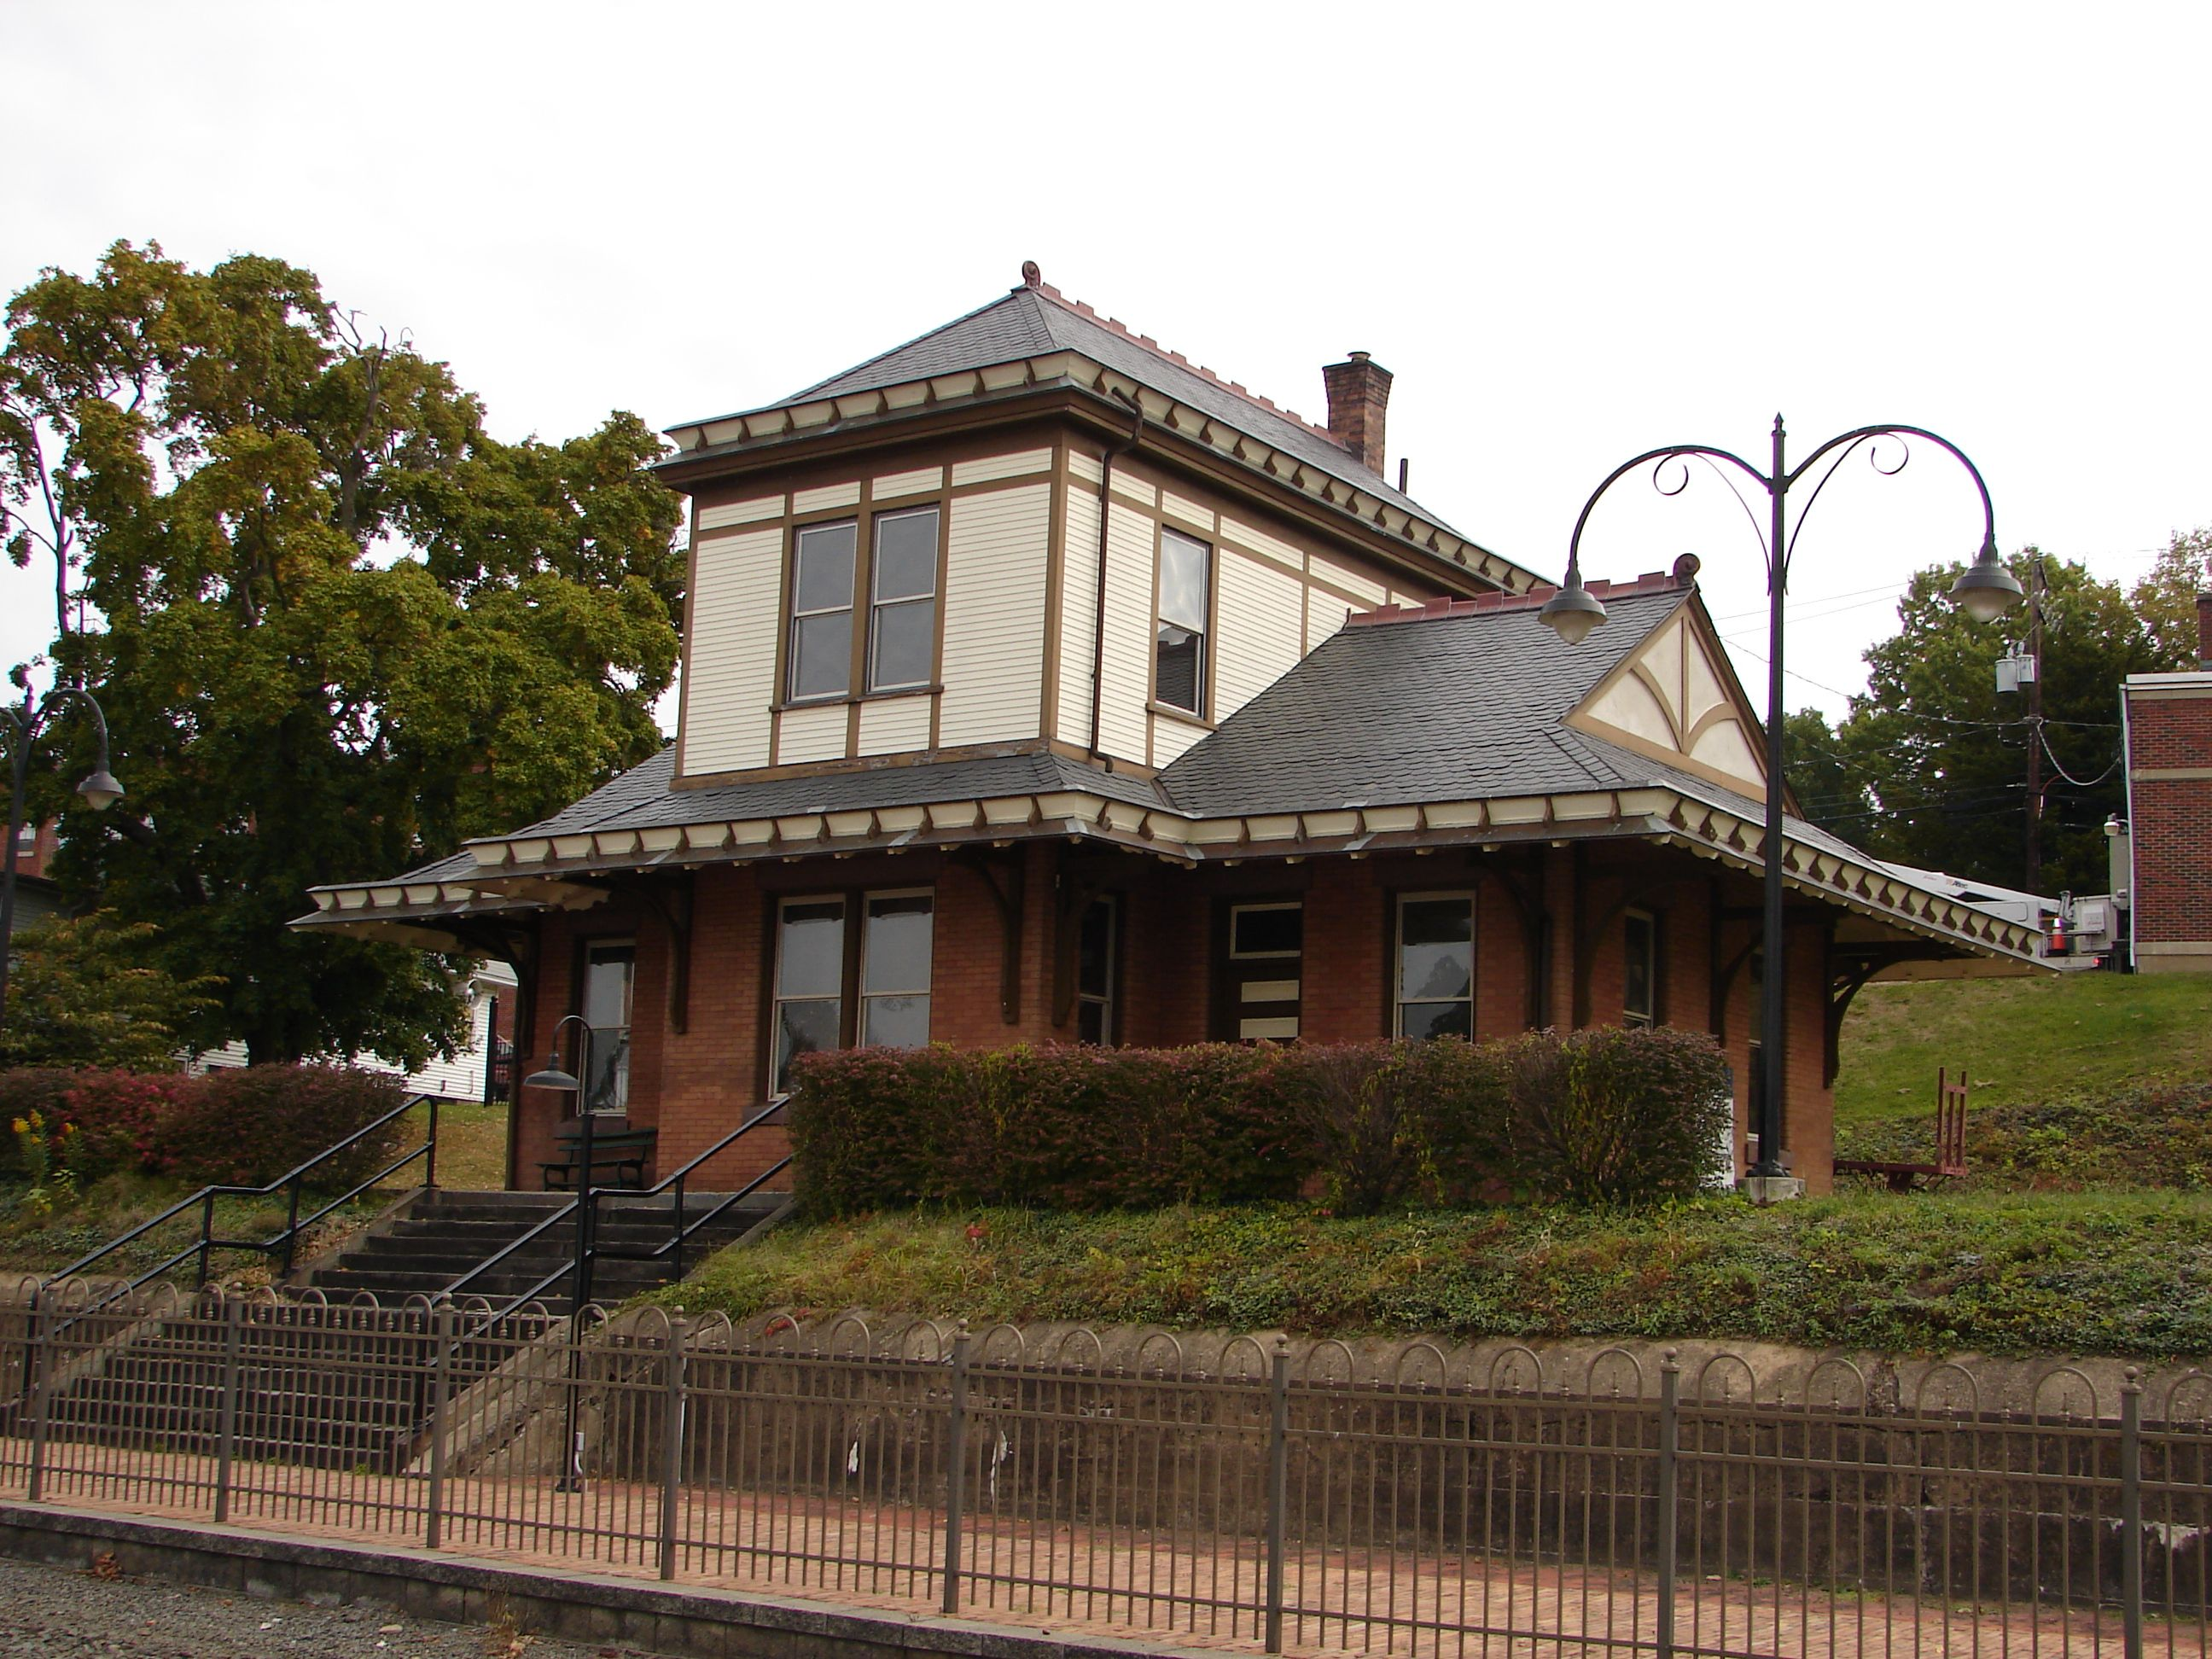 127 W Center St 1898 Train Station In Millersburg Pa House Styles North Country Slate Roof